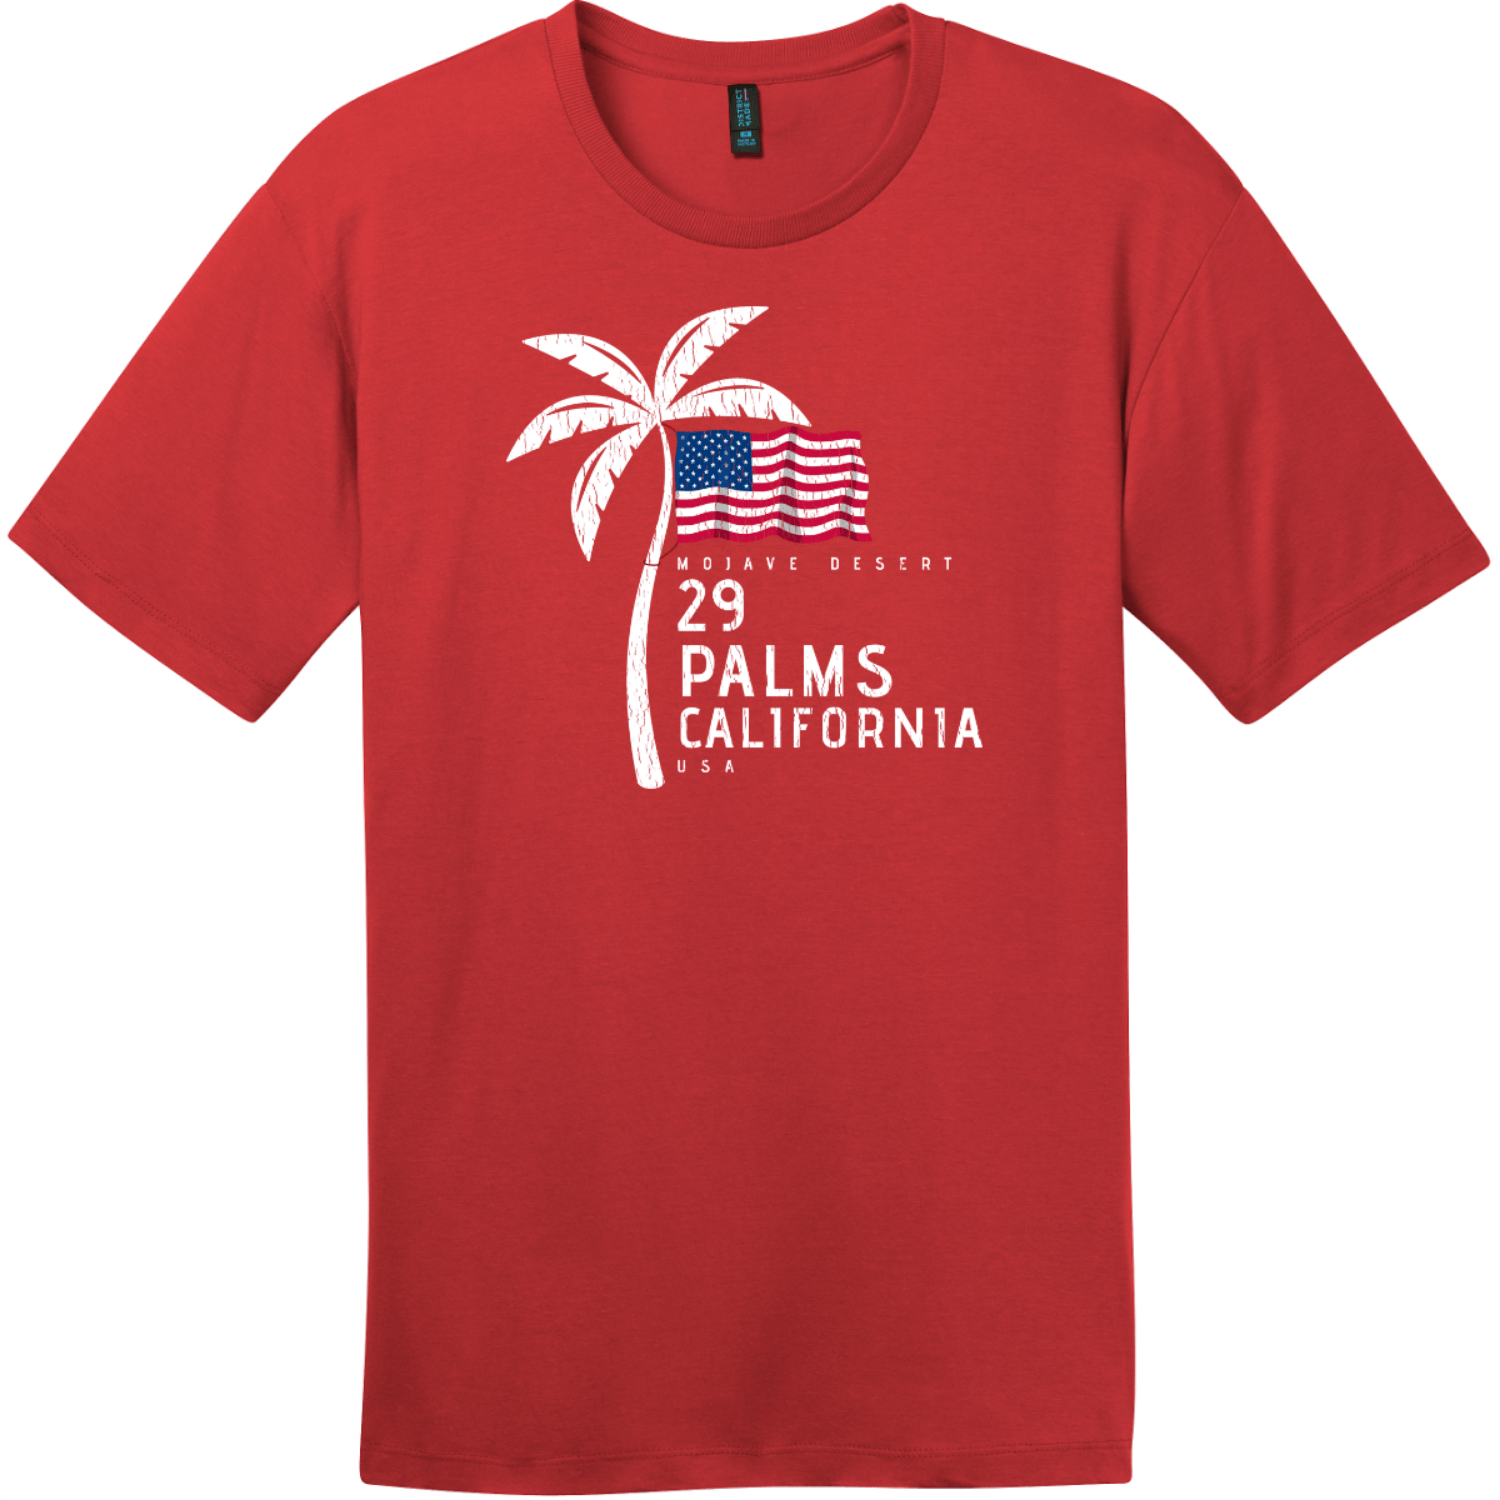 29 Palms California American Flag Palm Tree T-Shirt Classic Red District Perfect Weight Tee DT104